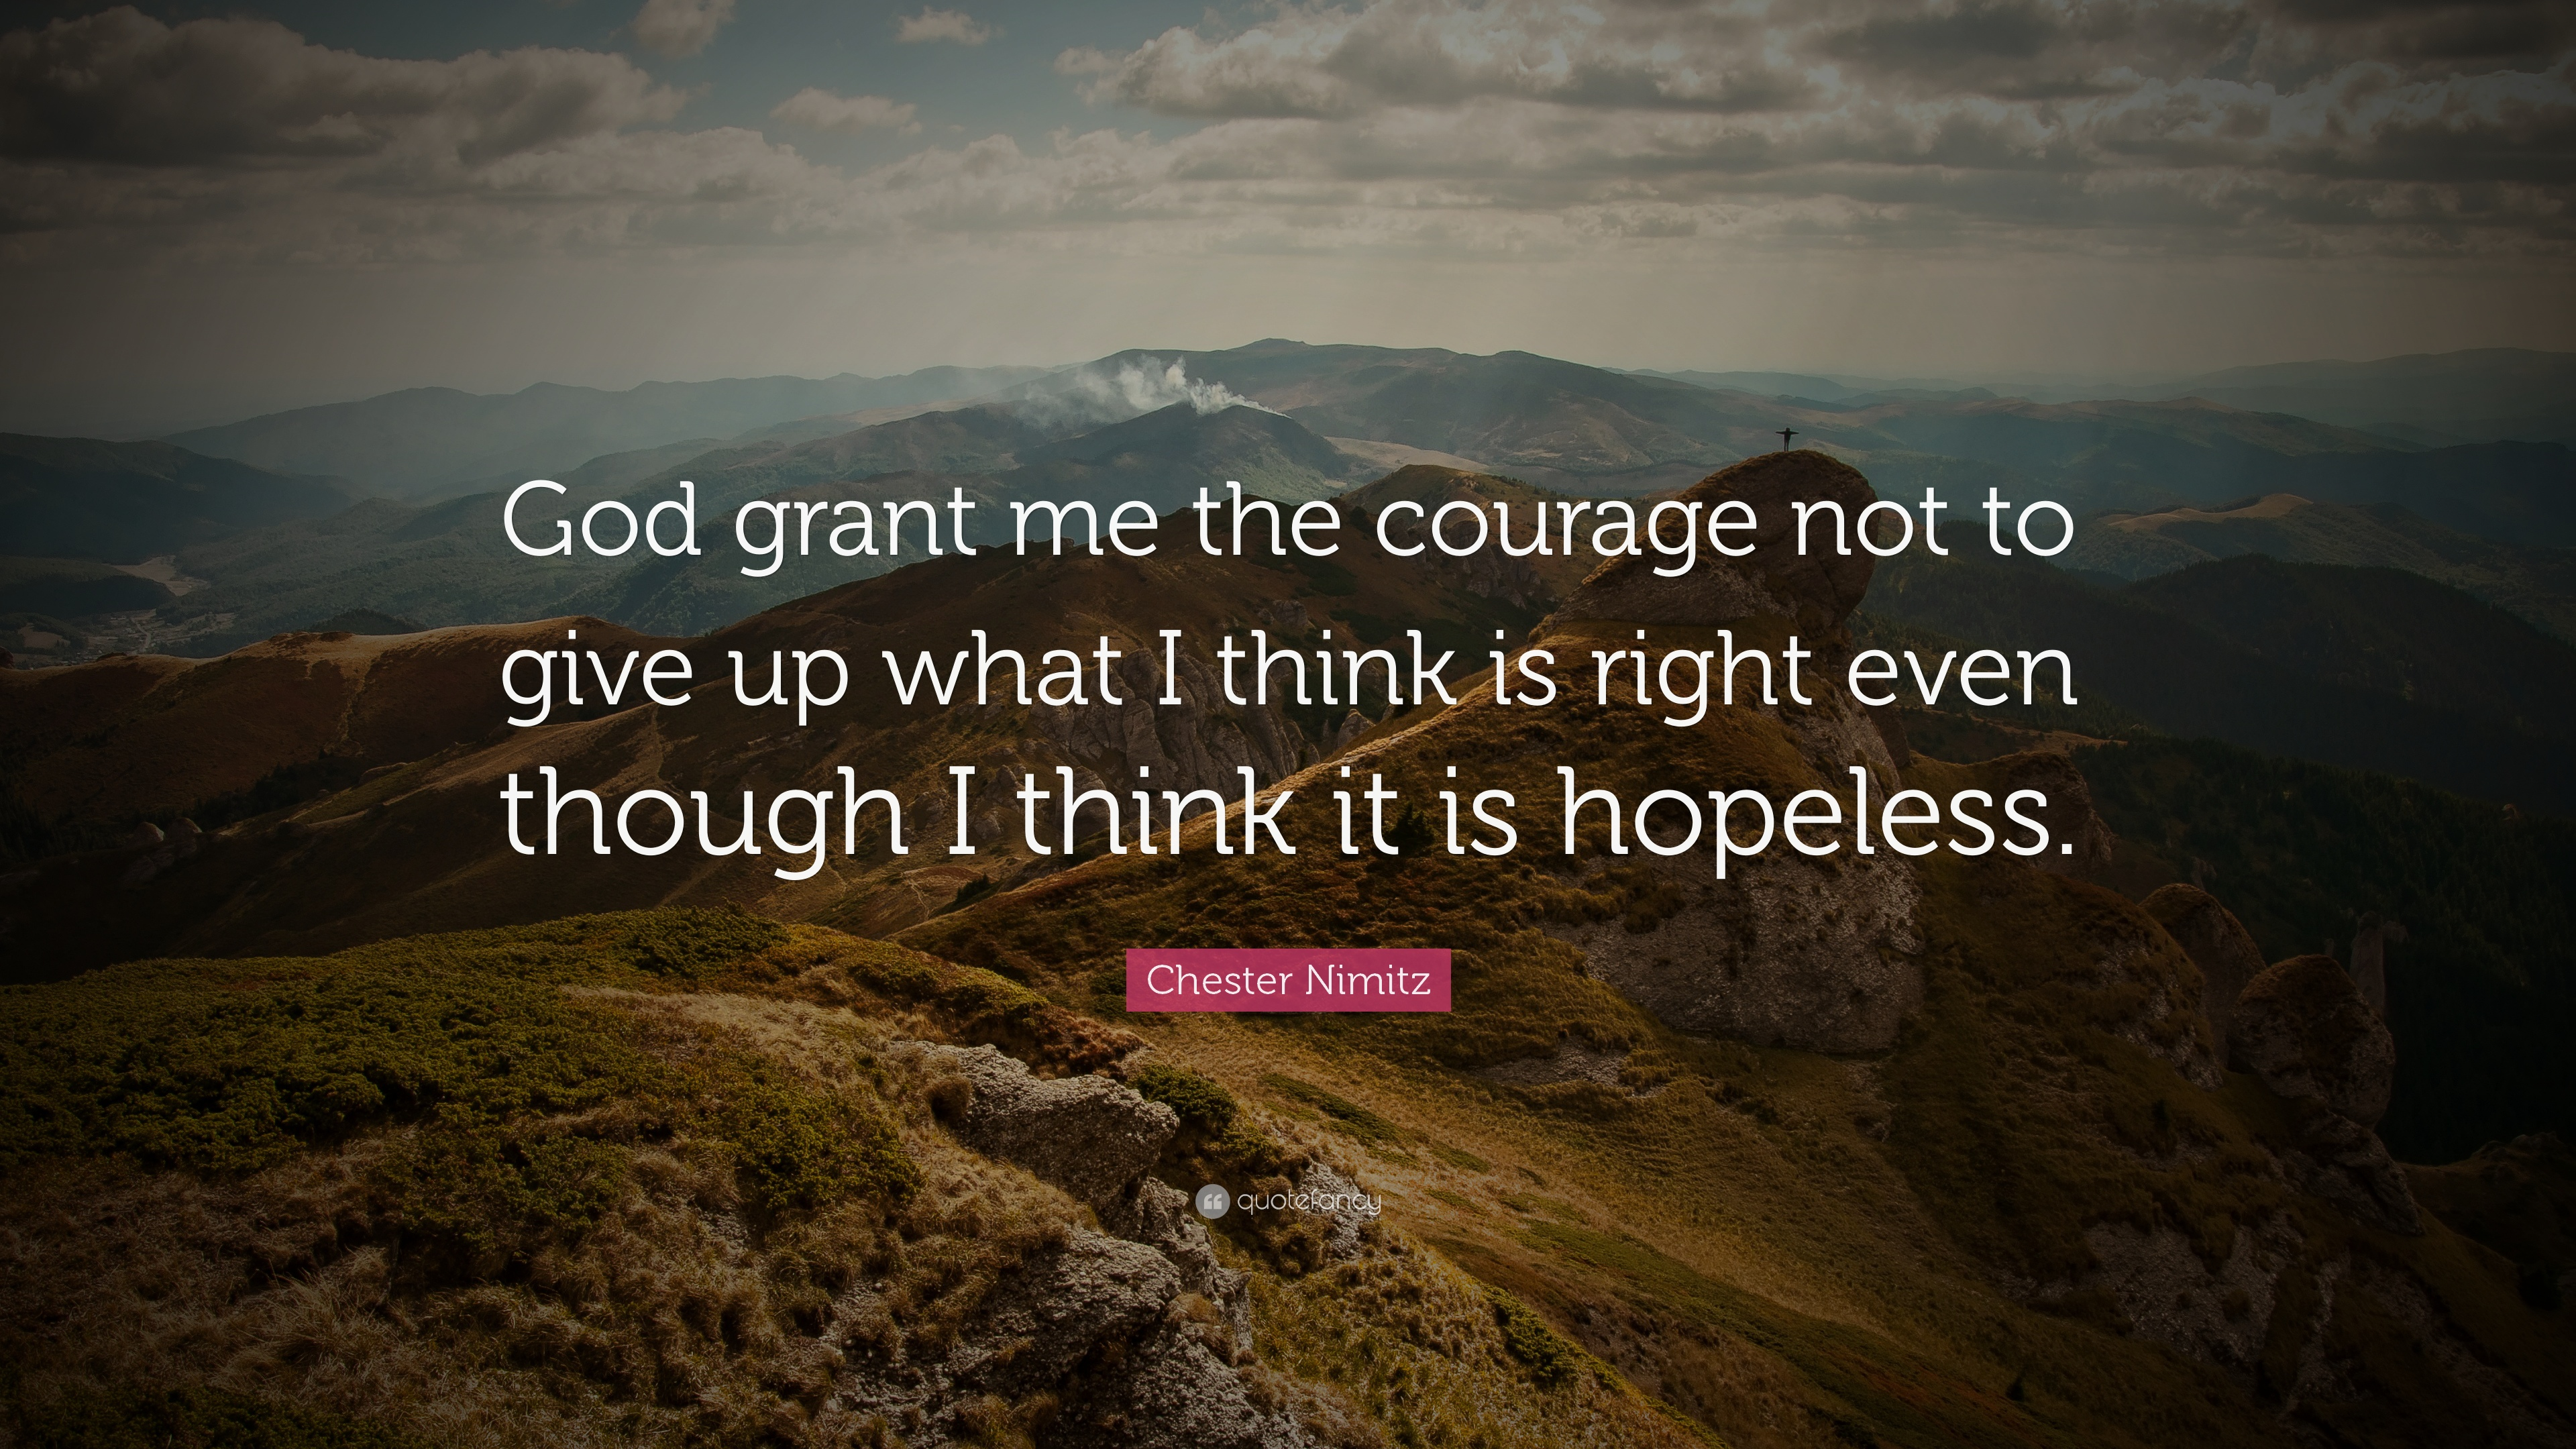 Chester Nimitz Quote God Grant Me The Courage Not To Give Up What